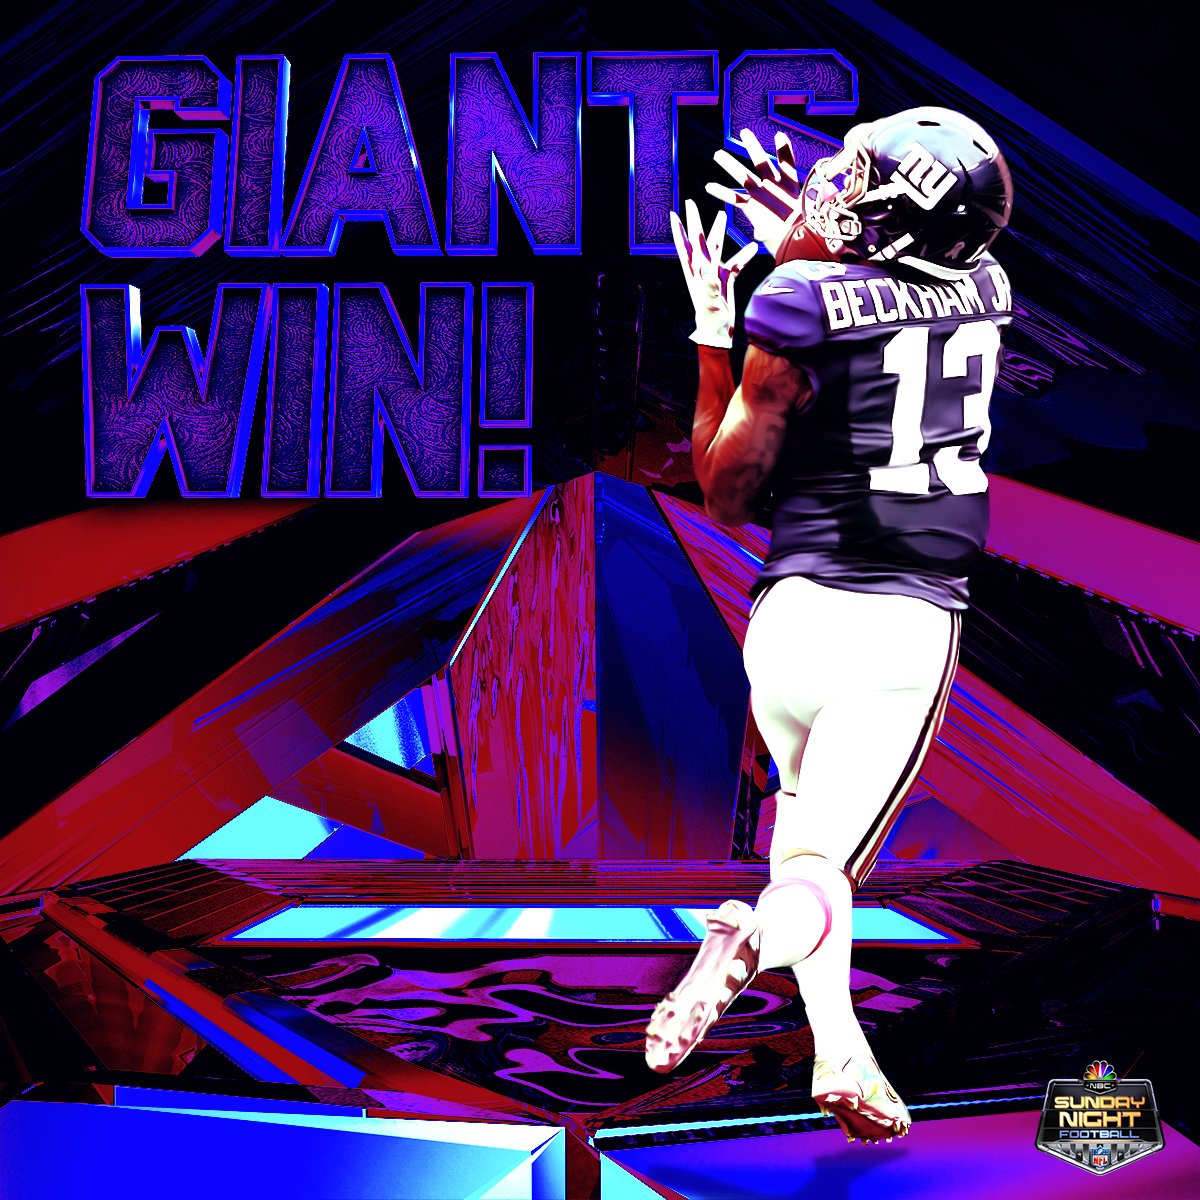 They've done it again! The @Giants defeat the Cowboys for the 2nd time this season, 10-7. #DALvsNYG